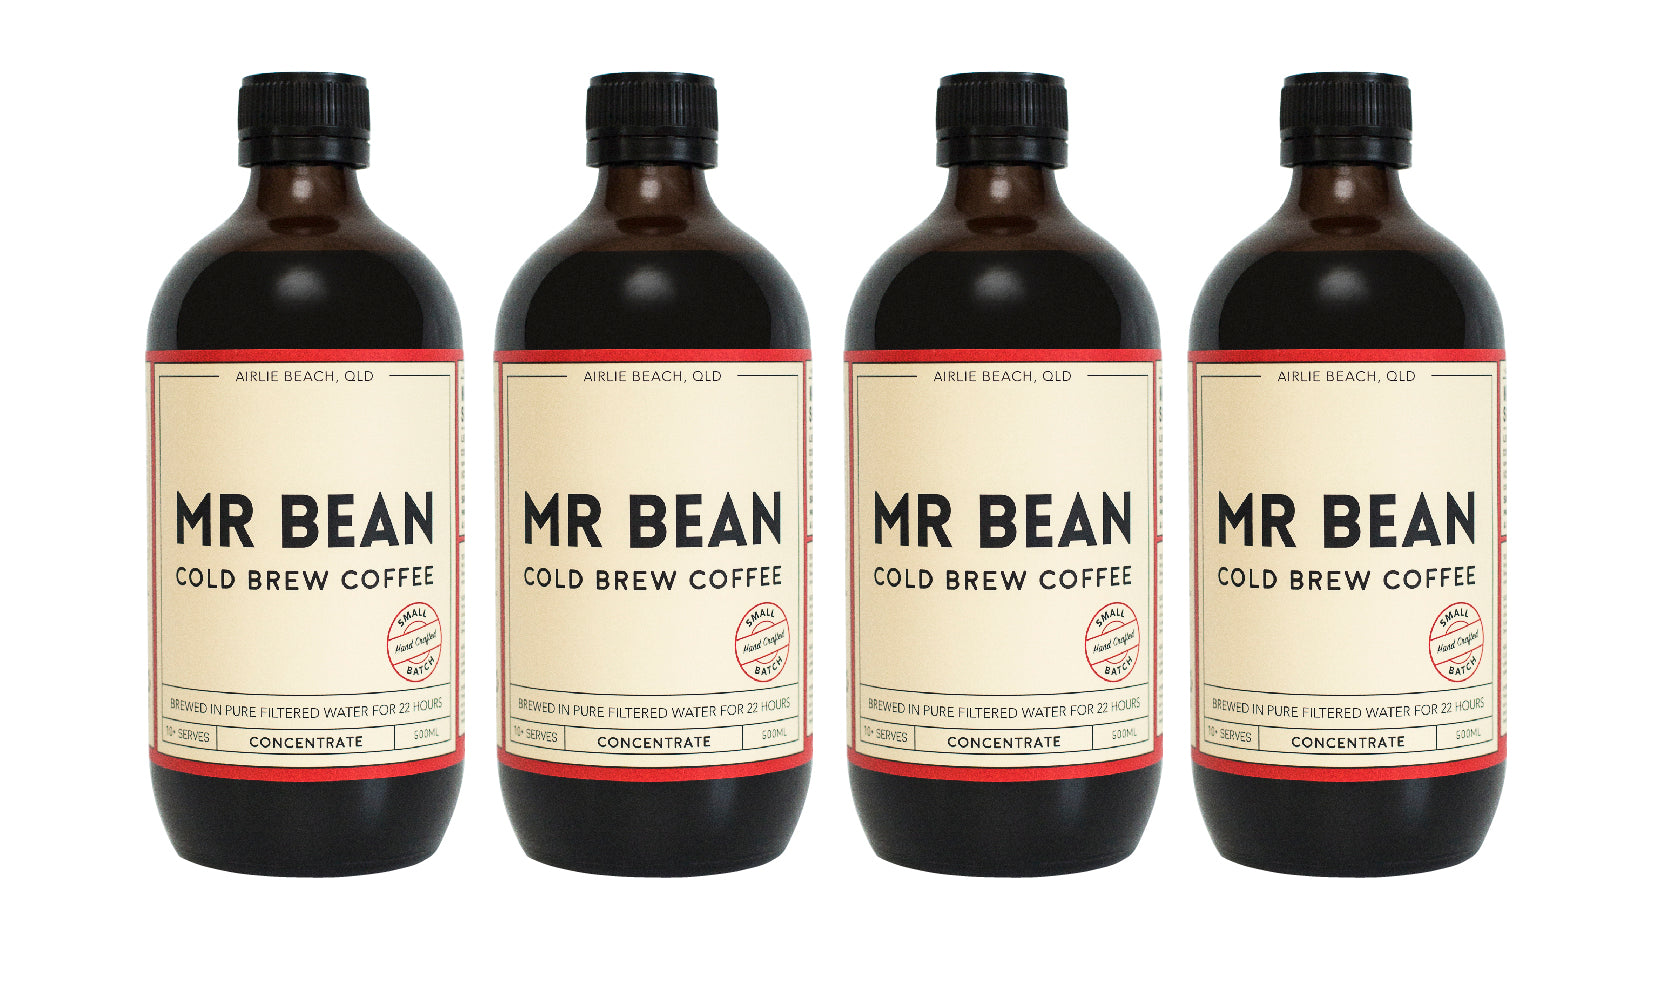 4 Bottles of Mr Bean Cold Brew Coffee Concentrate